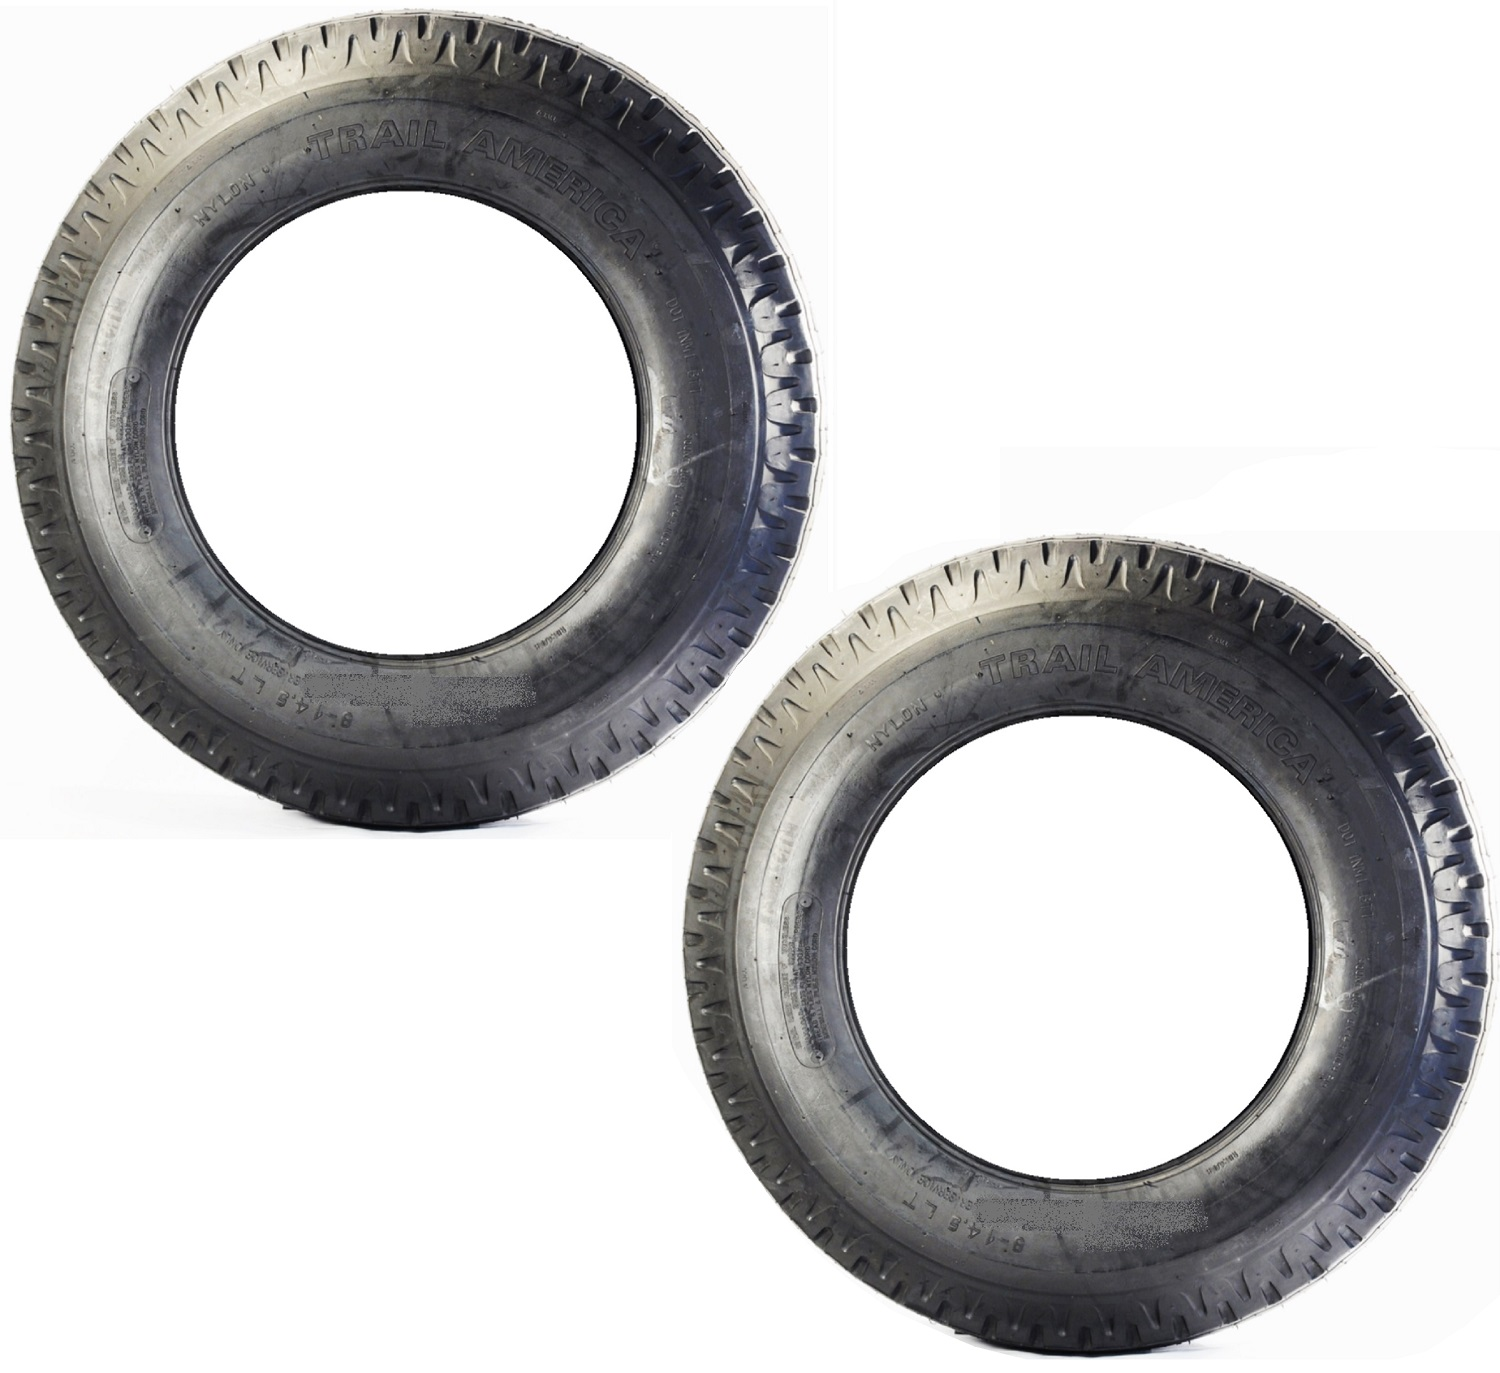 Two Equipment Trailer Tires MH 8X14.5 8-14.5 8 X 14.5 Low Boy Range G Bias Ply